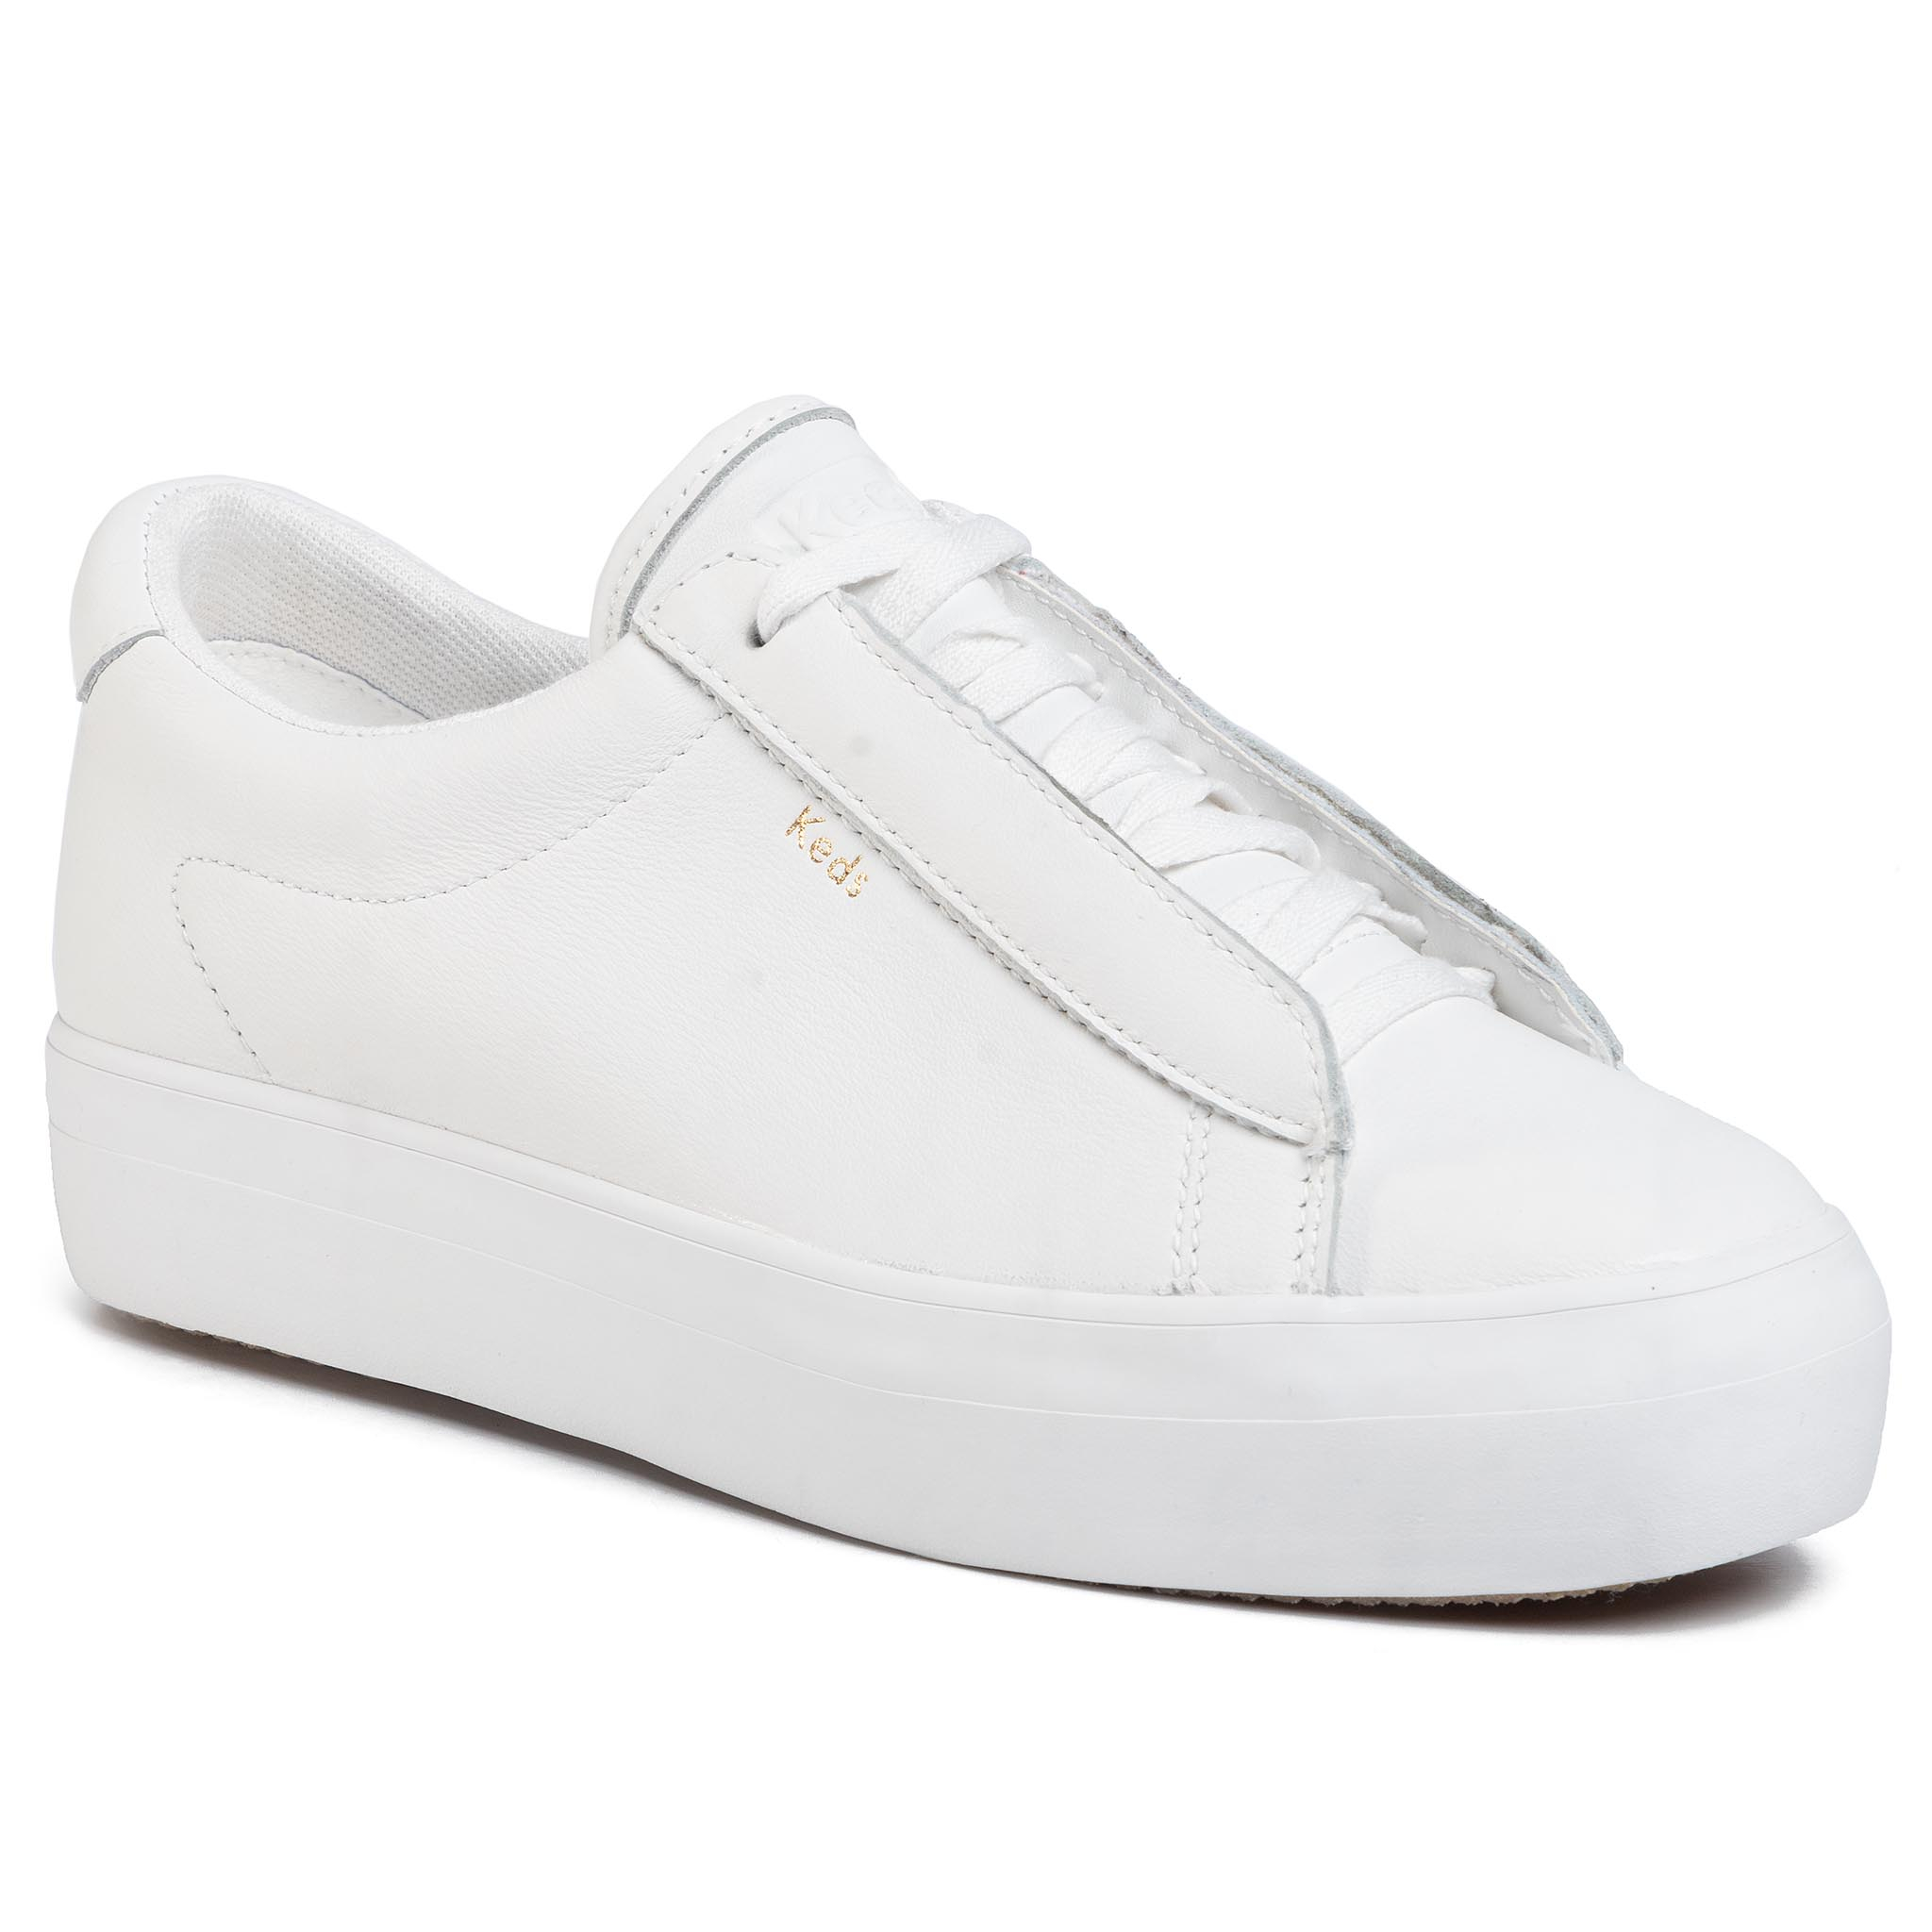 Sneakers KEDS - Rise Metro WH61100 Leather White